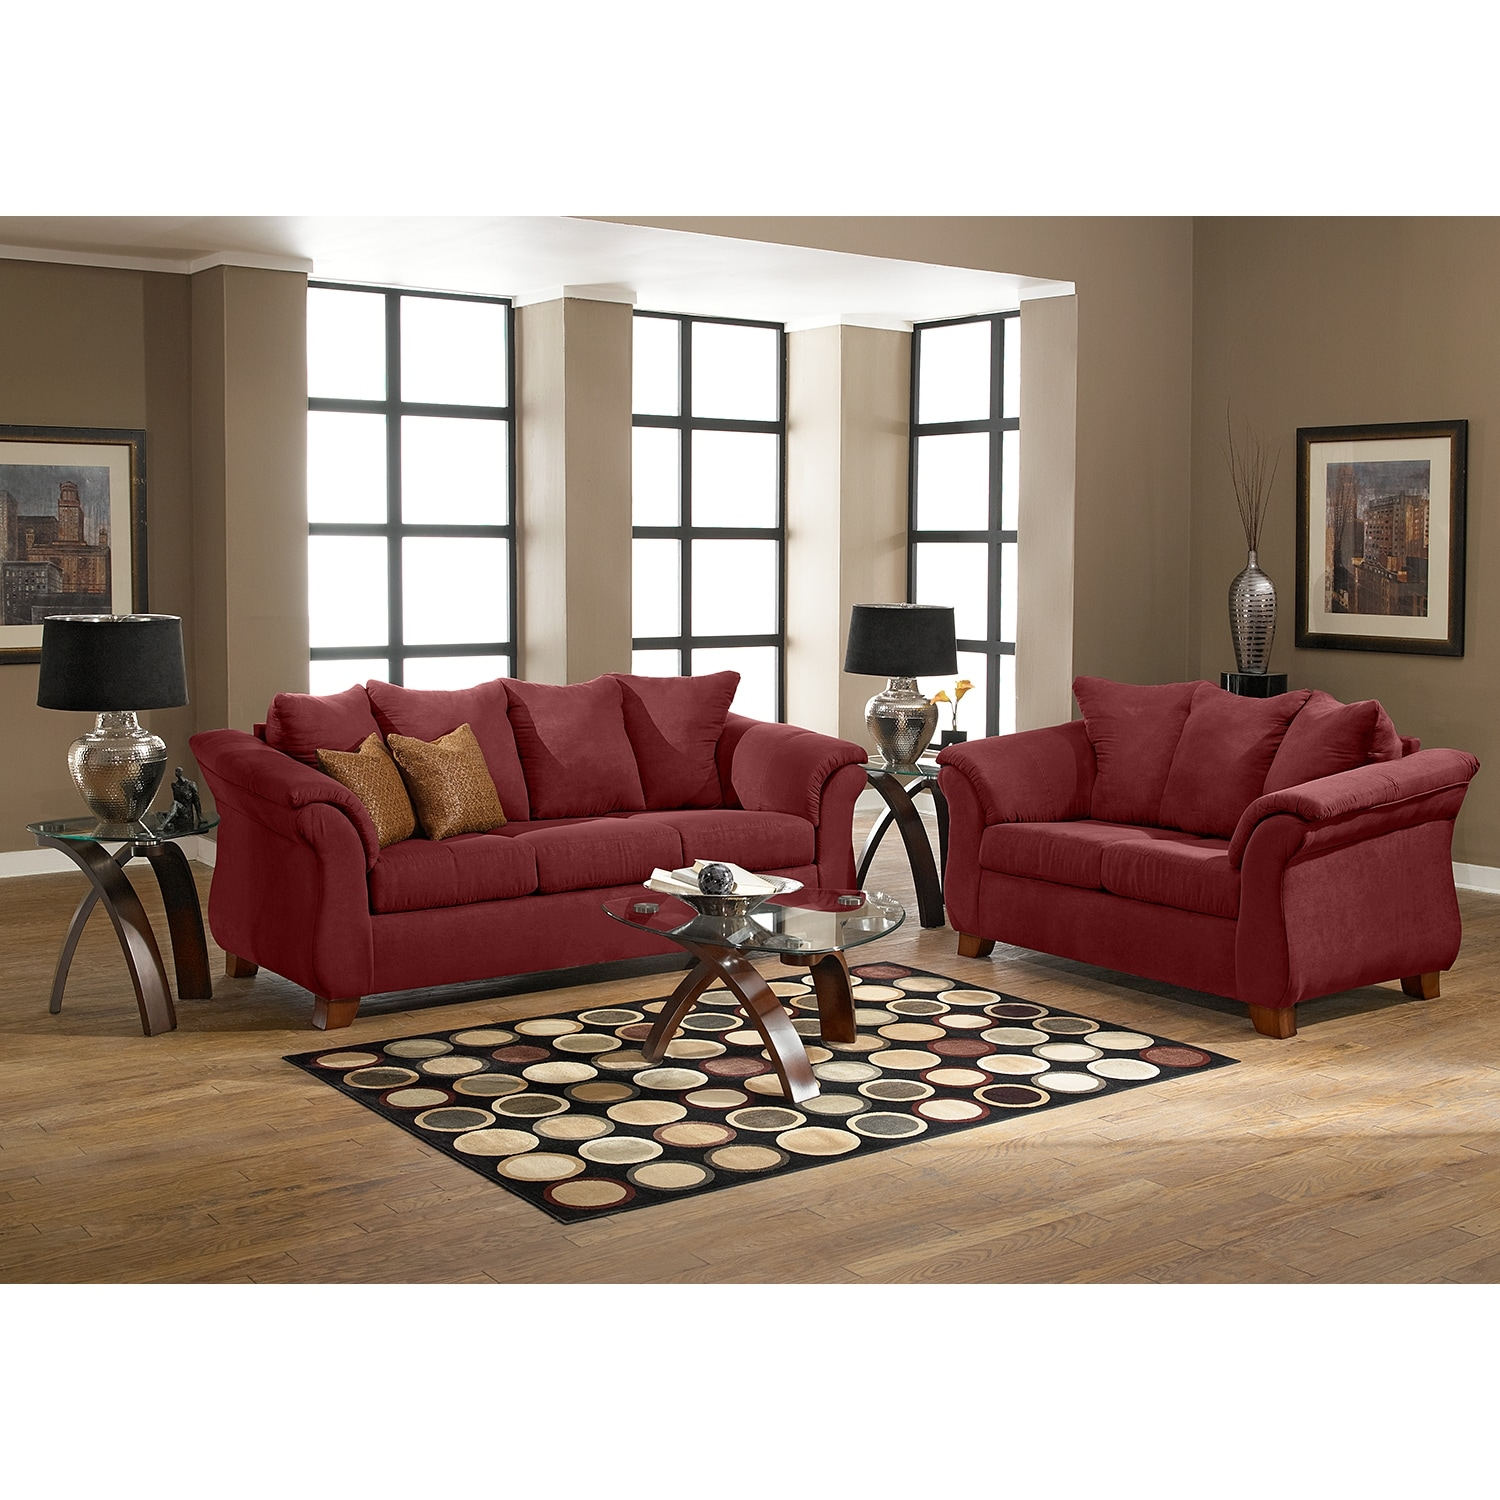 Adrian sofa red value city furniture for Room with furniture